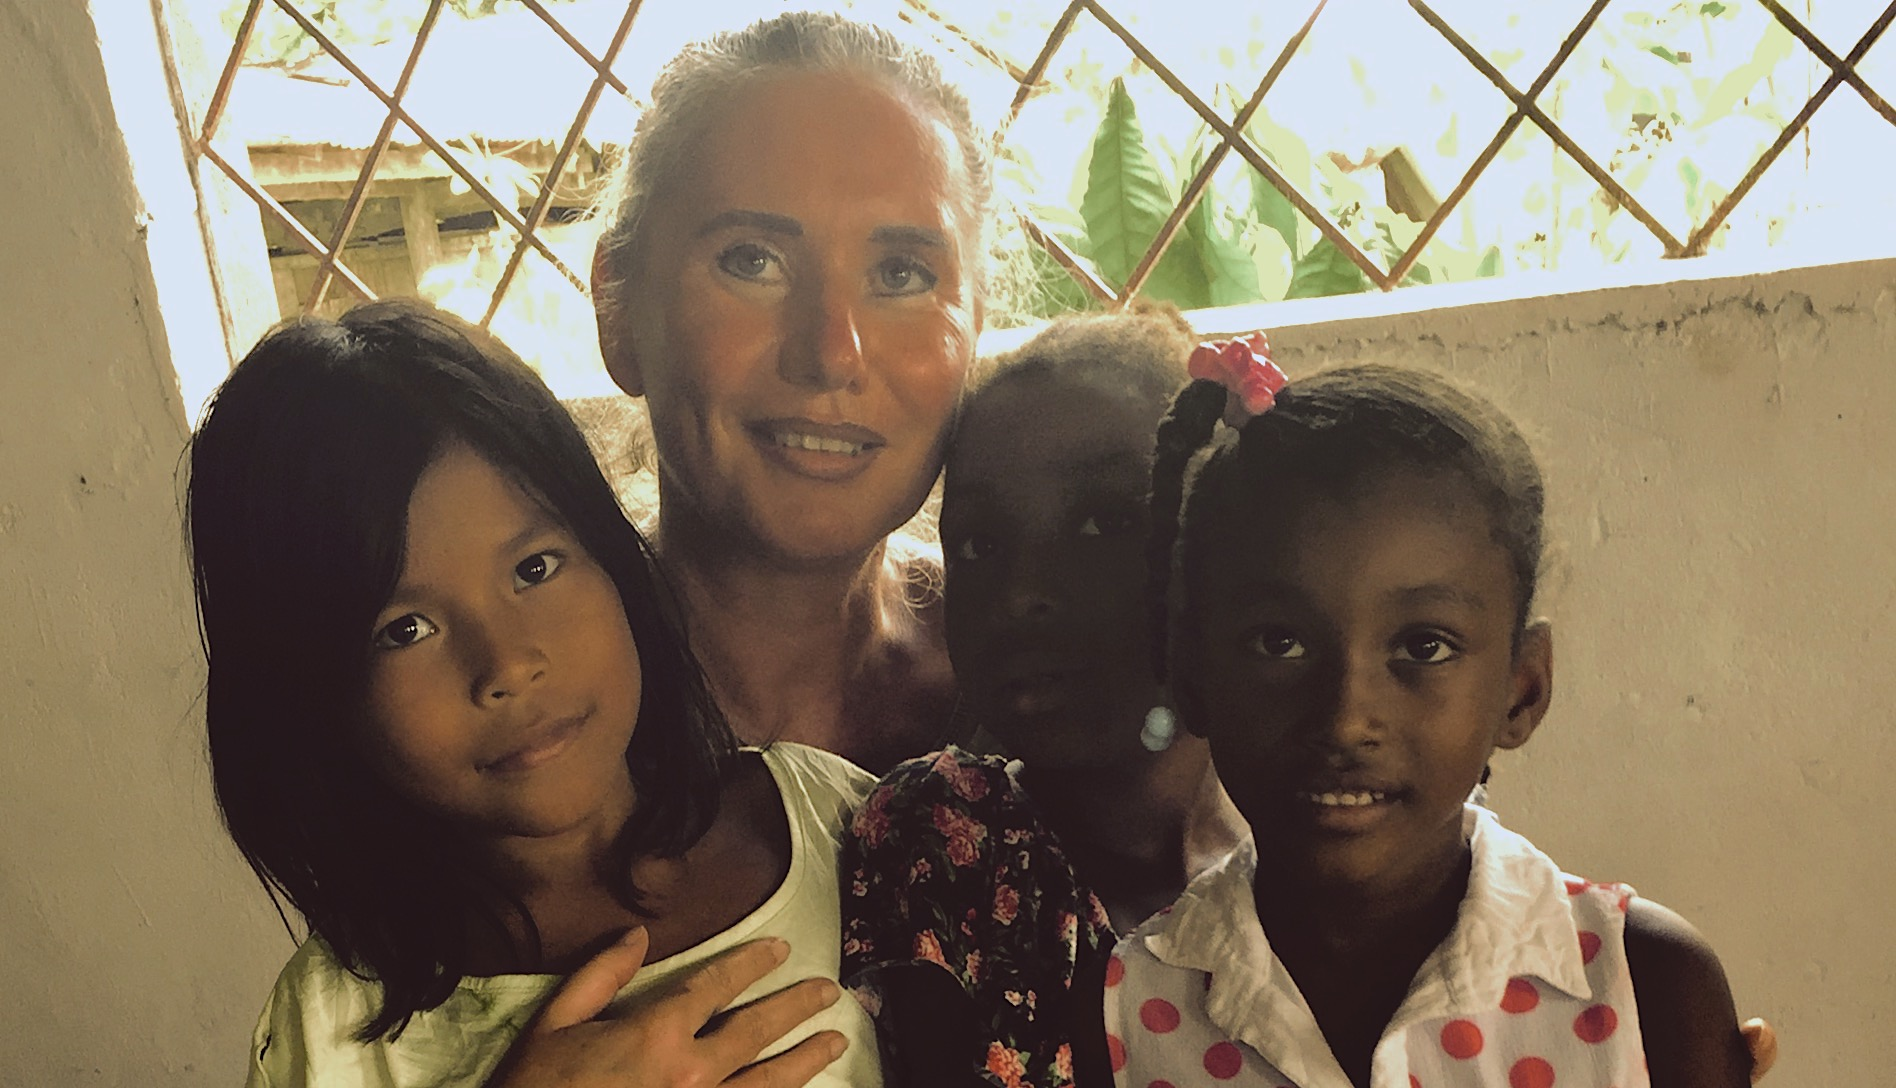 Verena Daum, Garden Eden Organisation, with children along the Rio Atrato in the region of Chocó in Colombia, www.progression.at